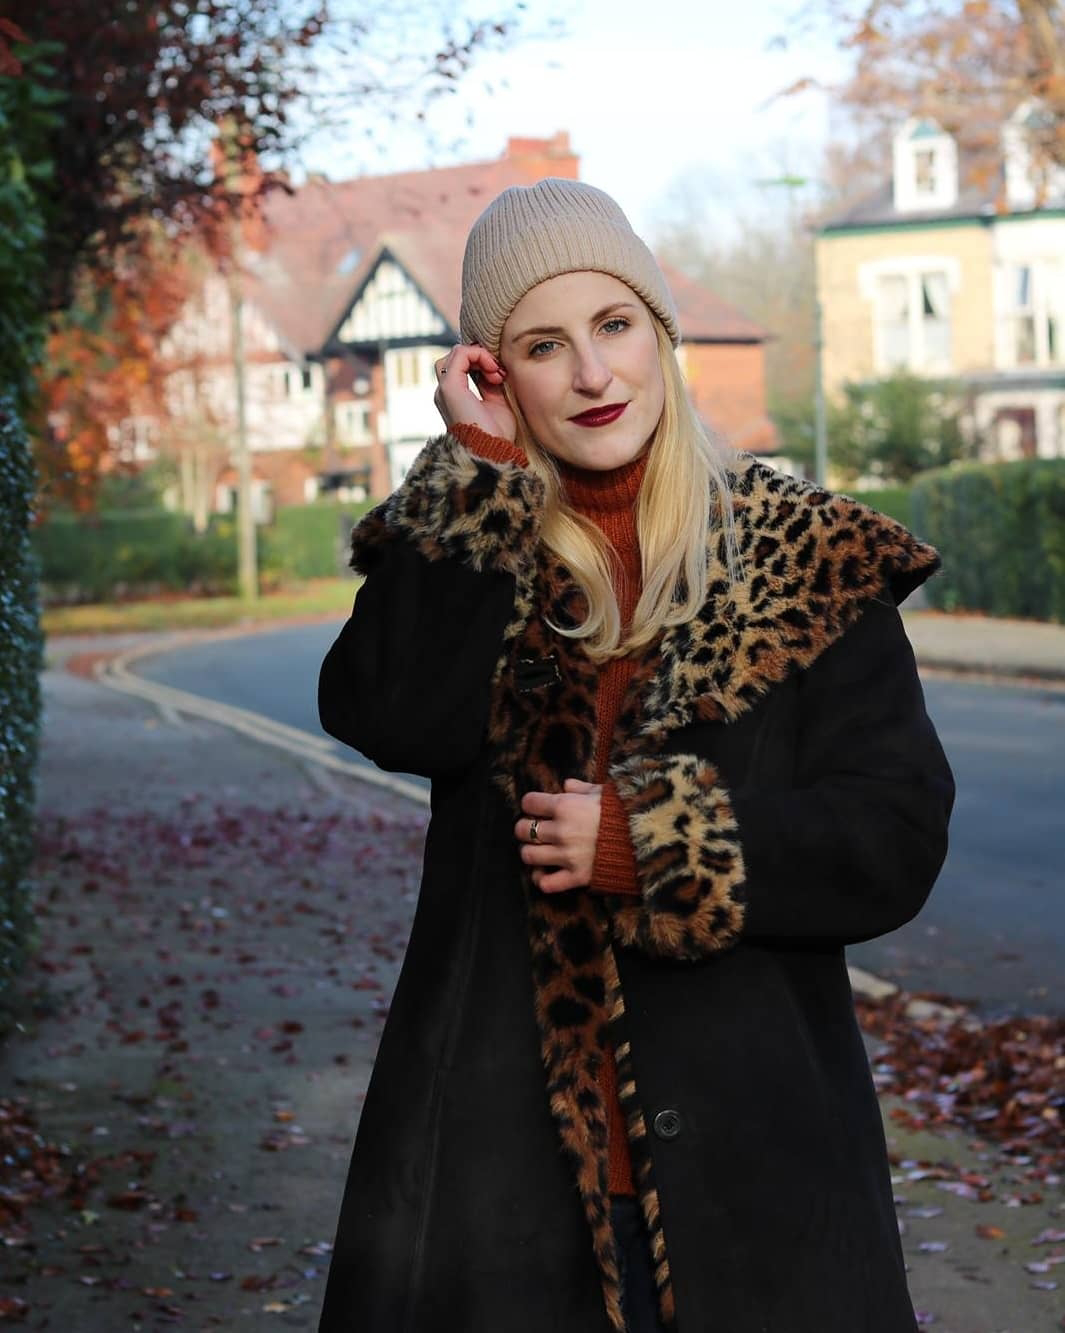 Amy in a vintage black faux suede coat with leopard print faux fur cuffs and collar